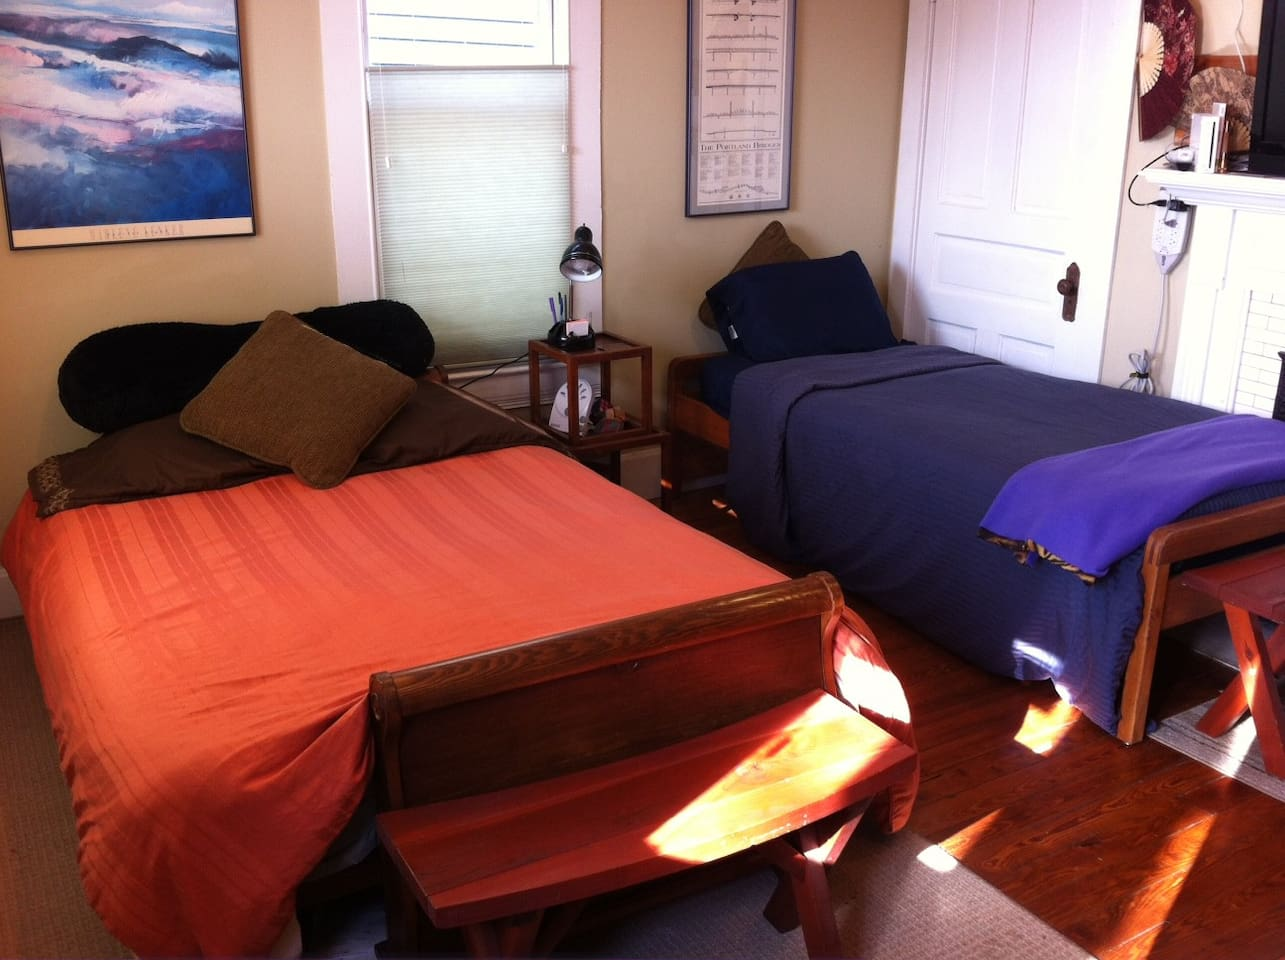 This room has a Temperpedic memory foam queen mattress and a firmer twin mattress.  It will be cozy for three people.